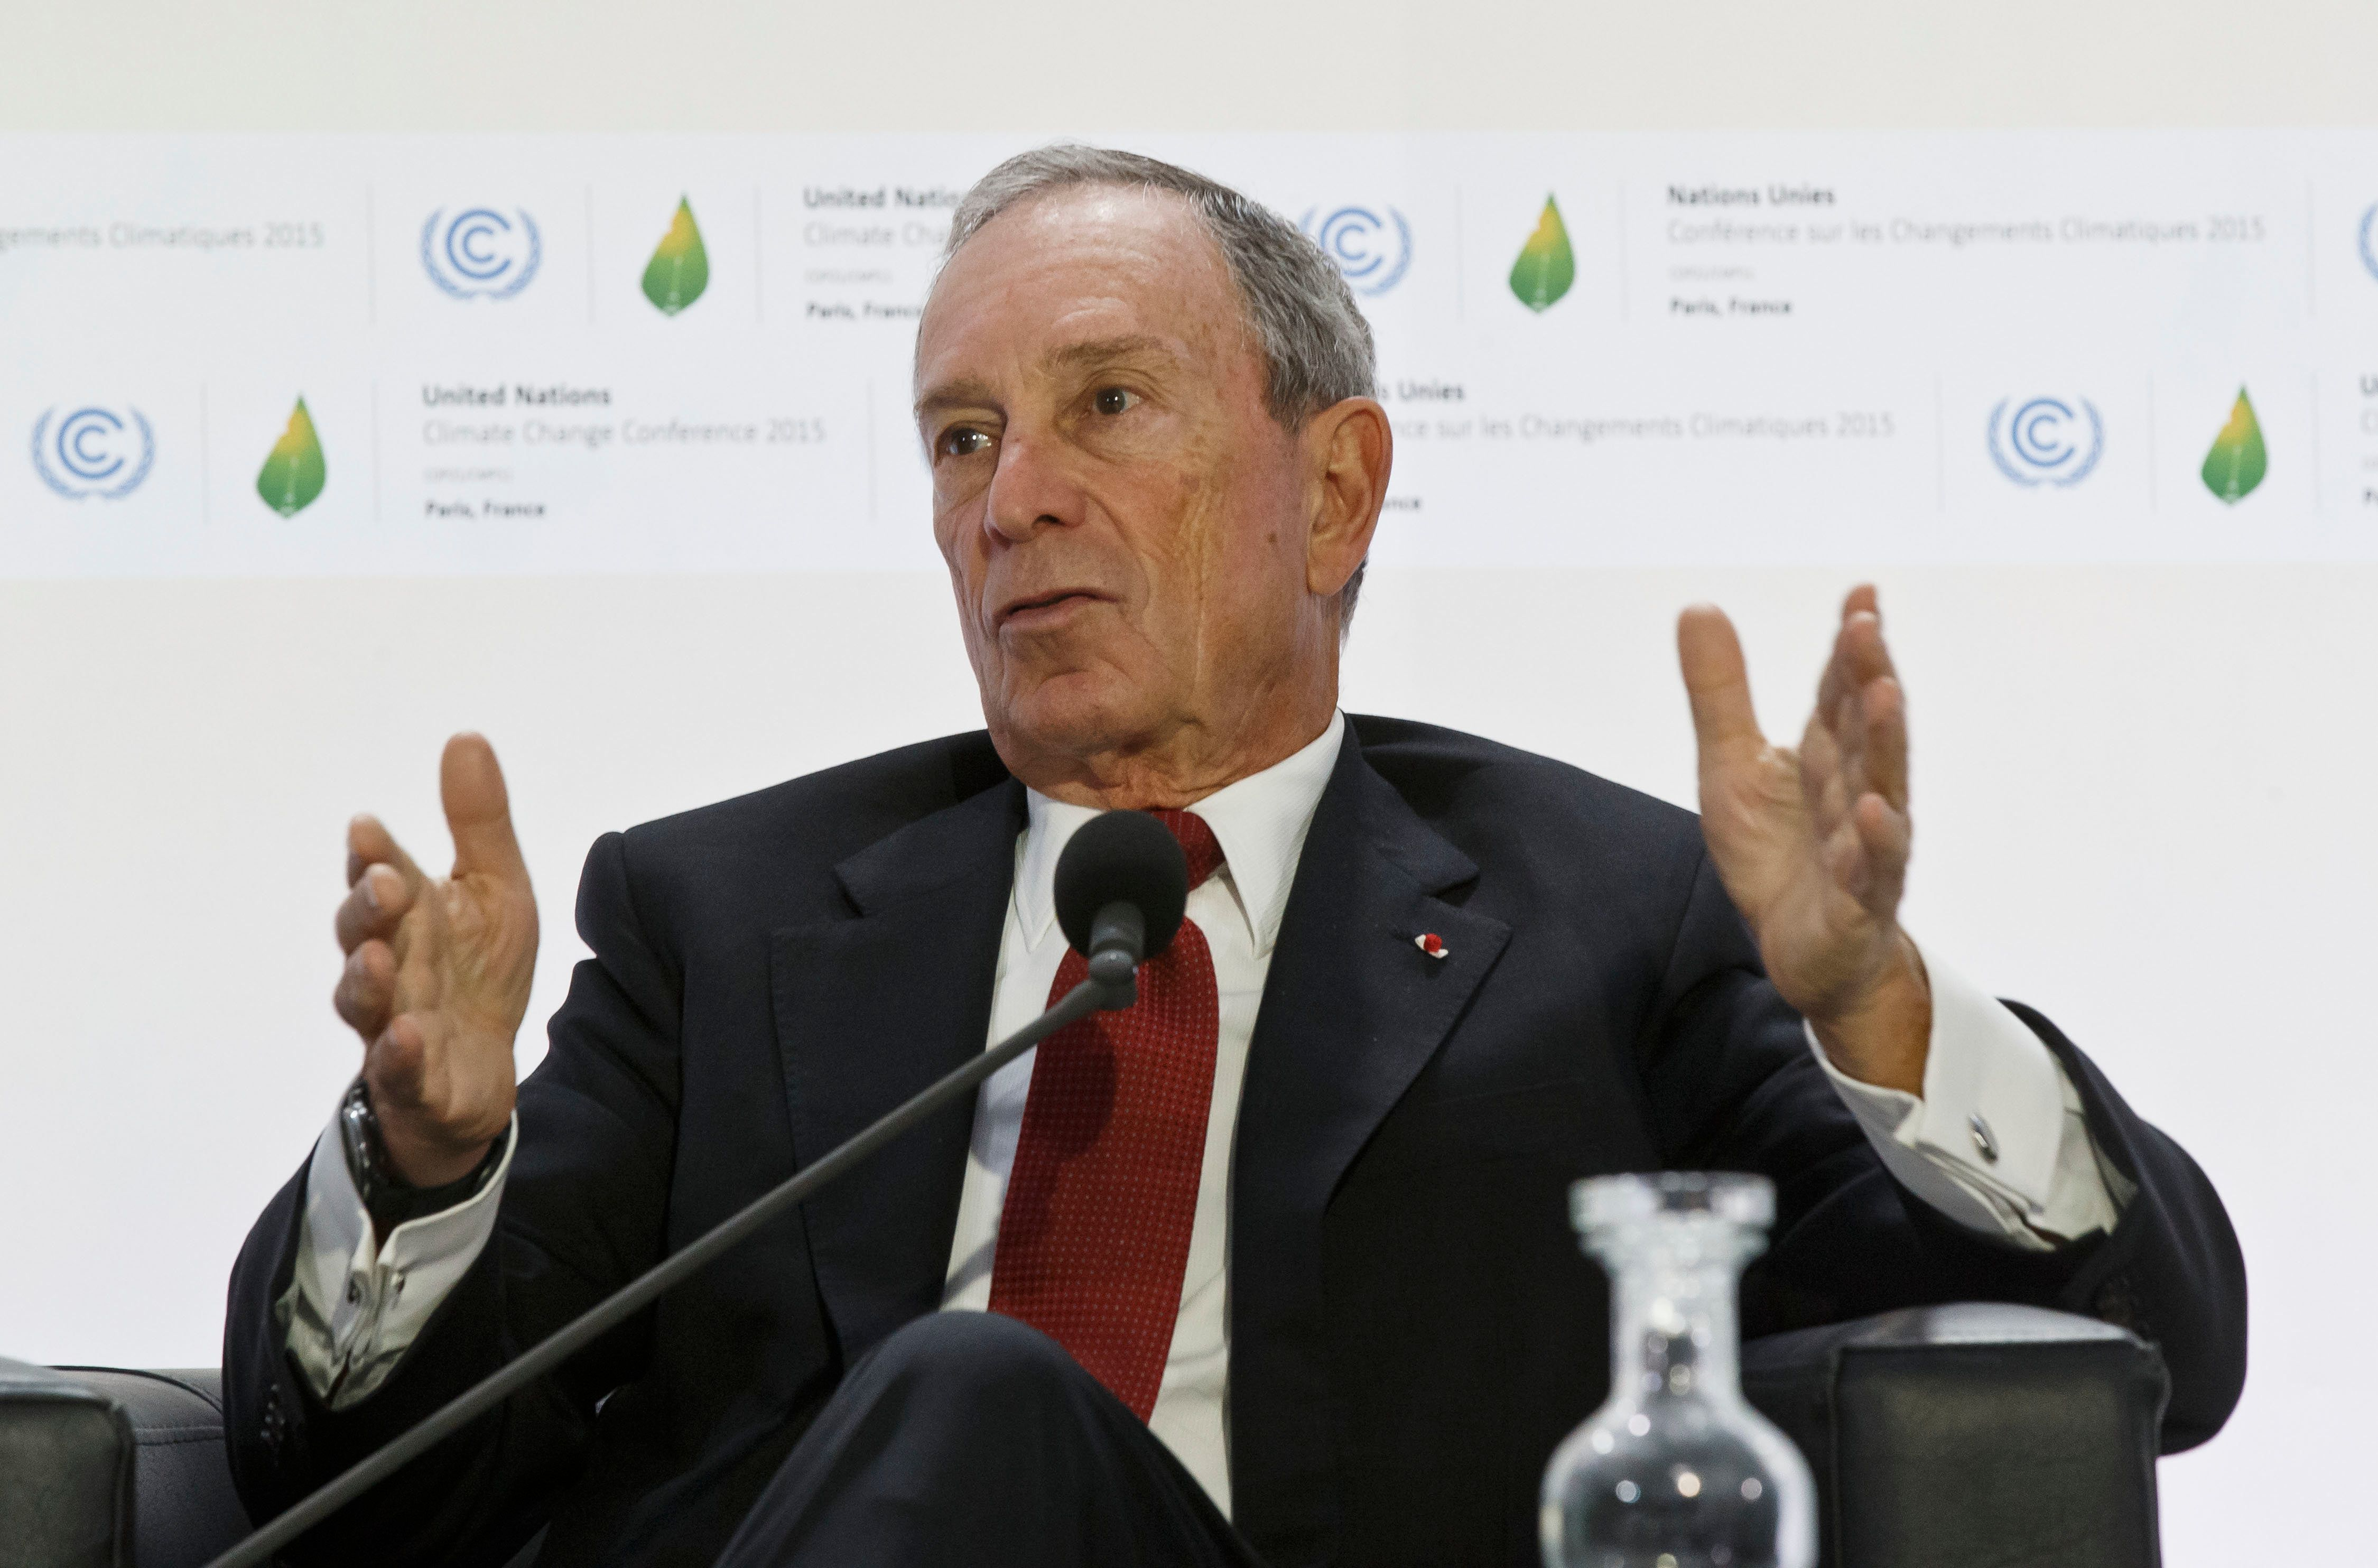 "Former New York City Mayor Michael Bloomberg, right, gestures as he speaks during a panel discussion on""Climate Change and Financial mMarkets""at the COP21, United Nations Climate Change Conference, in Le Bourget north of Paris, Friday, Dec. 4, 2015. (AP Photo. (AP PhotoMichel Euler)"